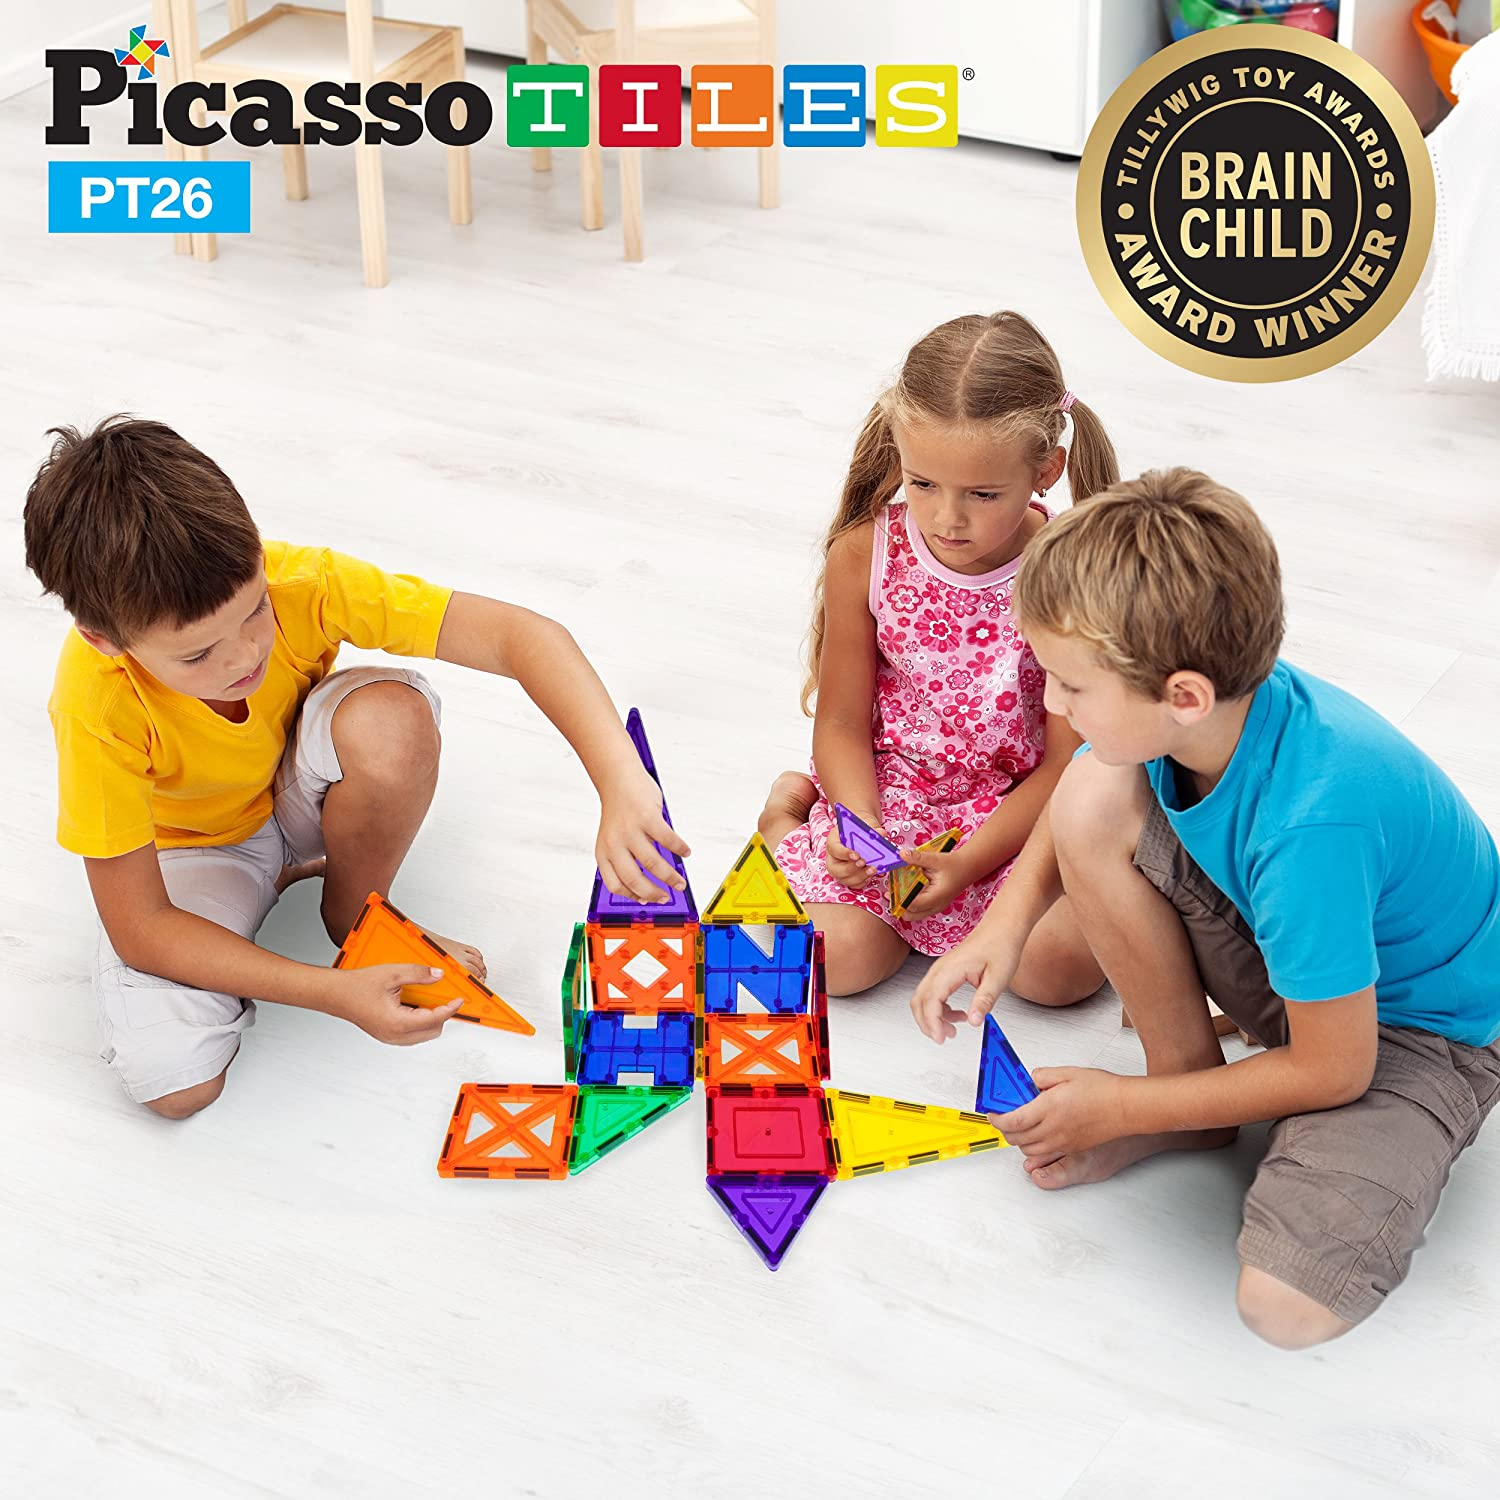 PicassoTiles 26 Piece Building Blocks 26pcs Inspirational Kit 3D Building Construction Toys Clear Magnetic Stacking Set STEM Playboards Magnet Felt Tiles Novelty Games, Creativity Beyond Imagination